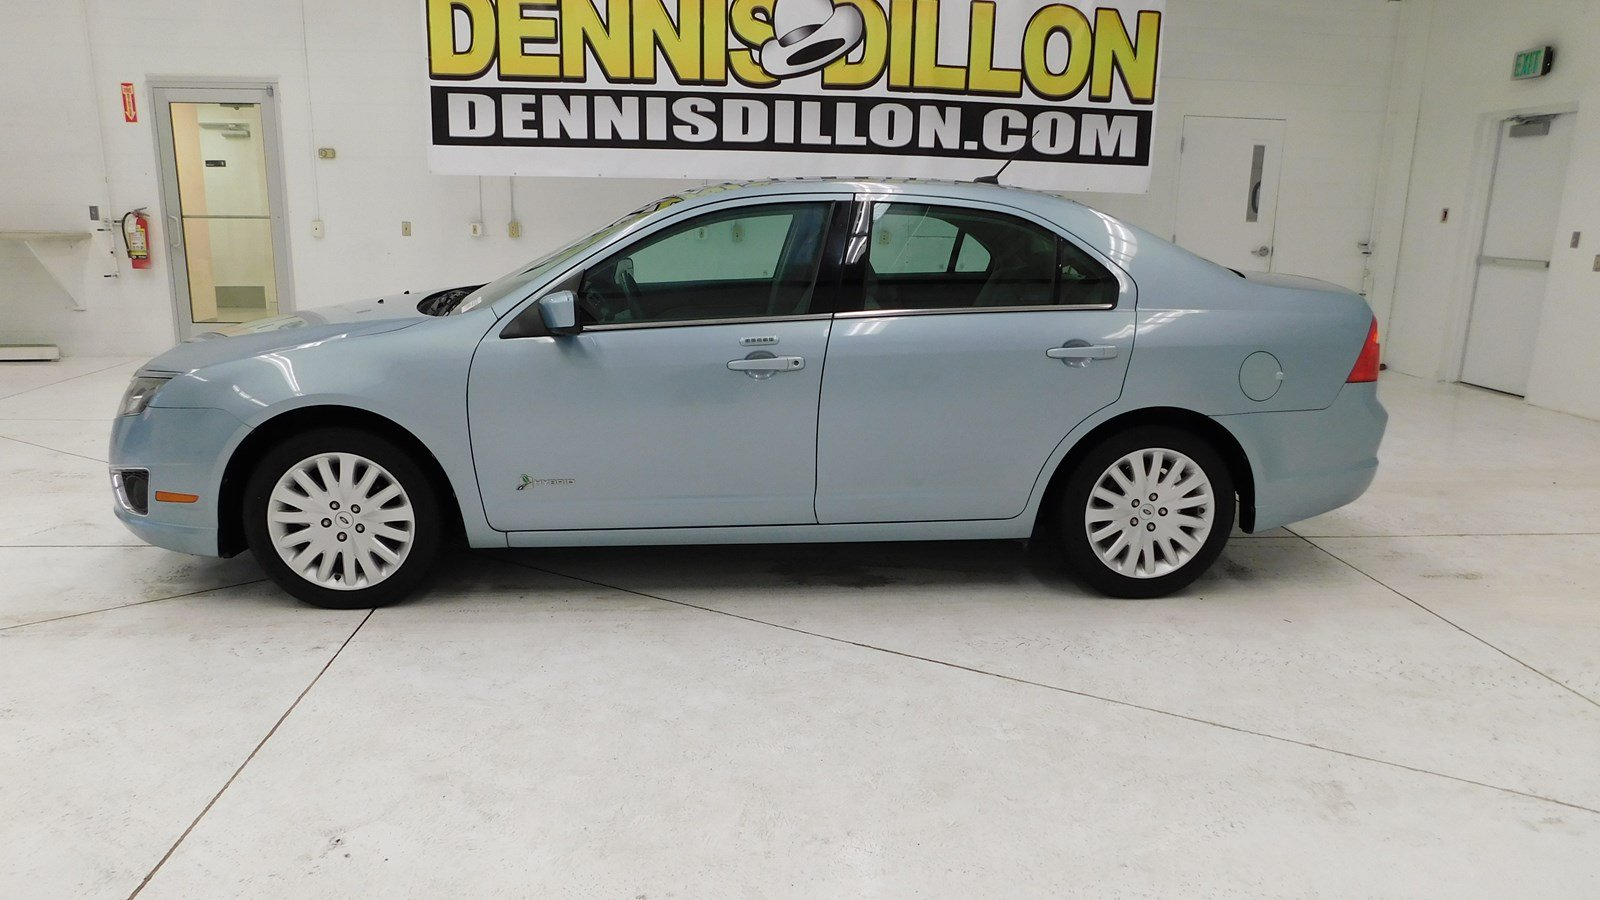 pre-owned 2011 ford fusion hybrid 4dr car in boise #m01618p | dennis